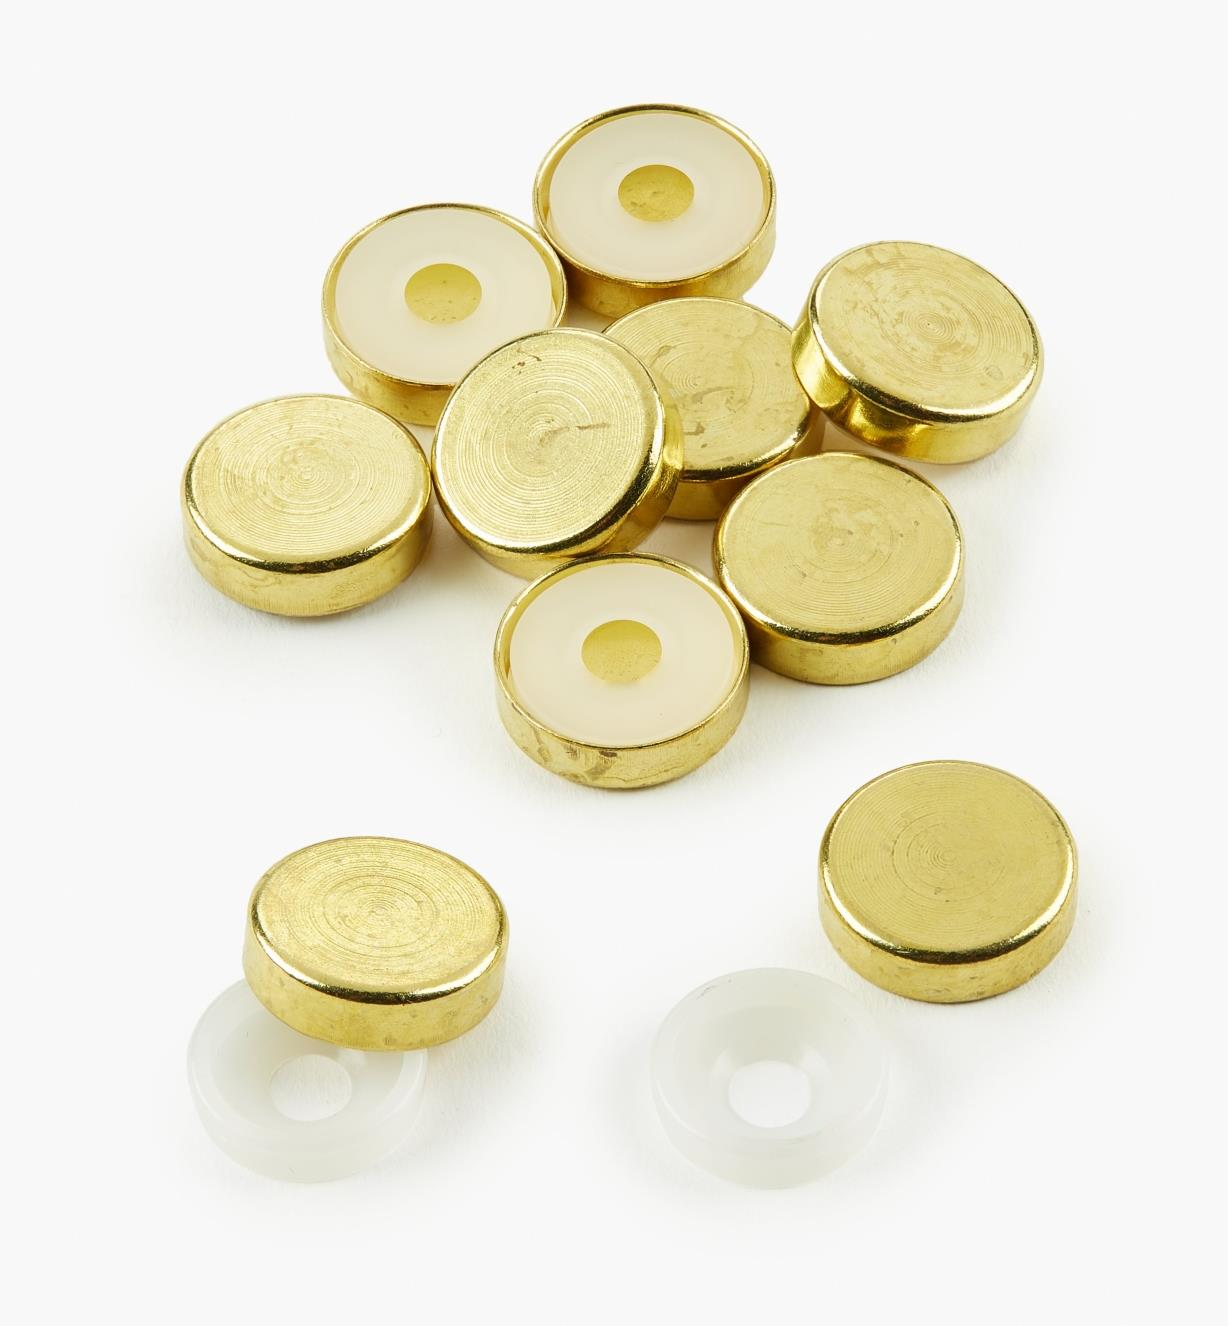 00S5201 - Brass Screw Covers, pkg. of 10